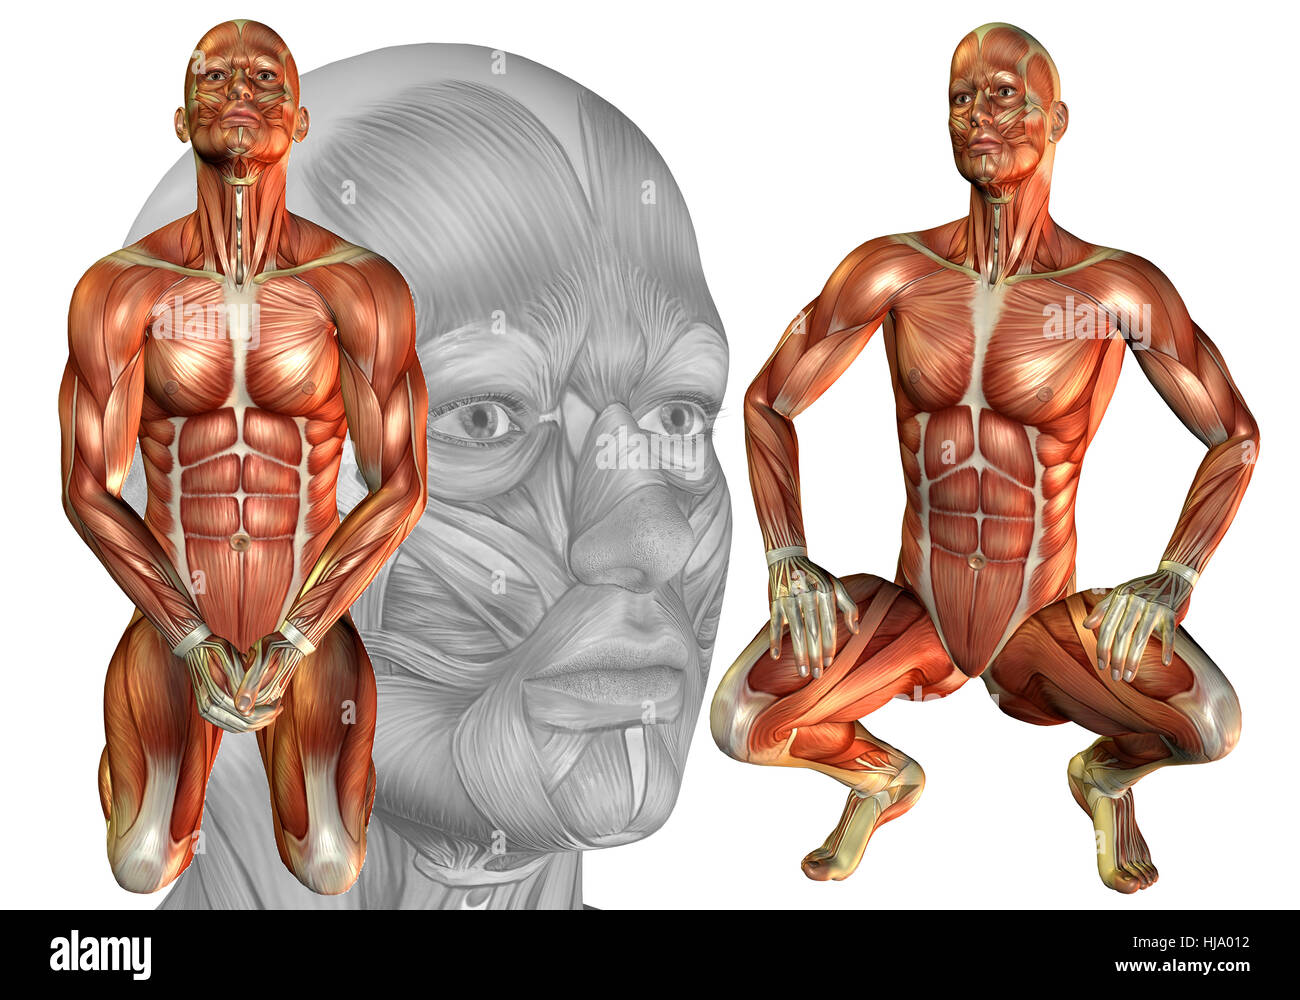 Anatomy Crouching Leg Muscles Cut Out Stock Images & Pictures - Alamy